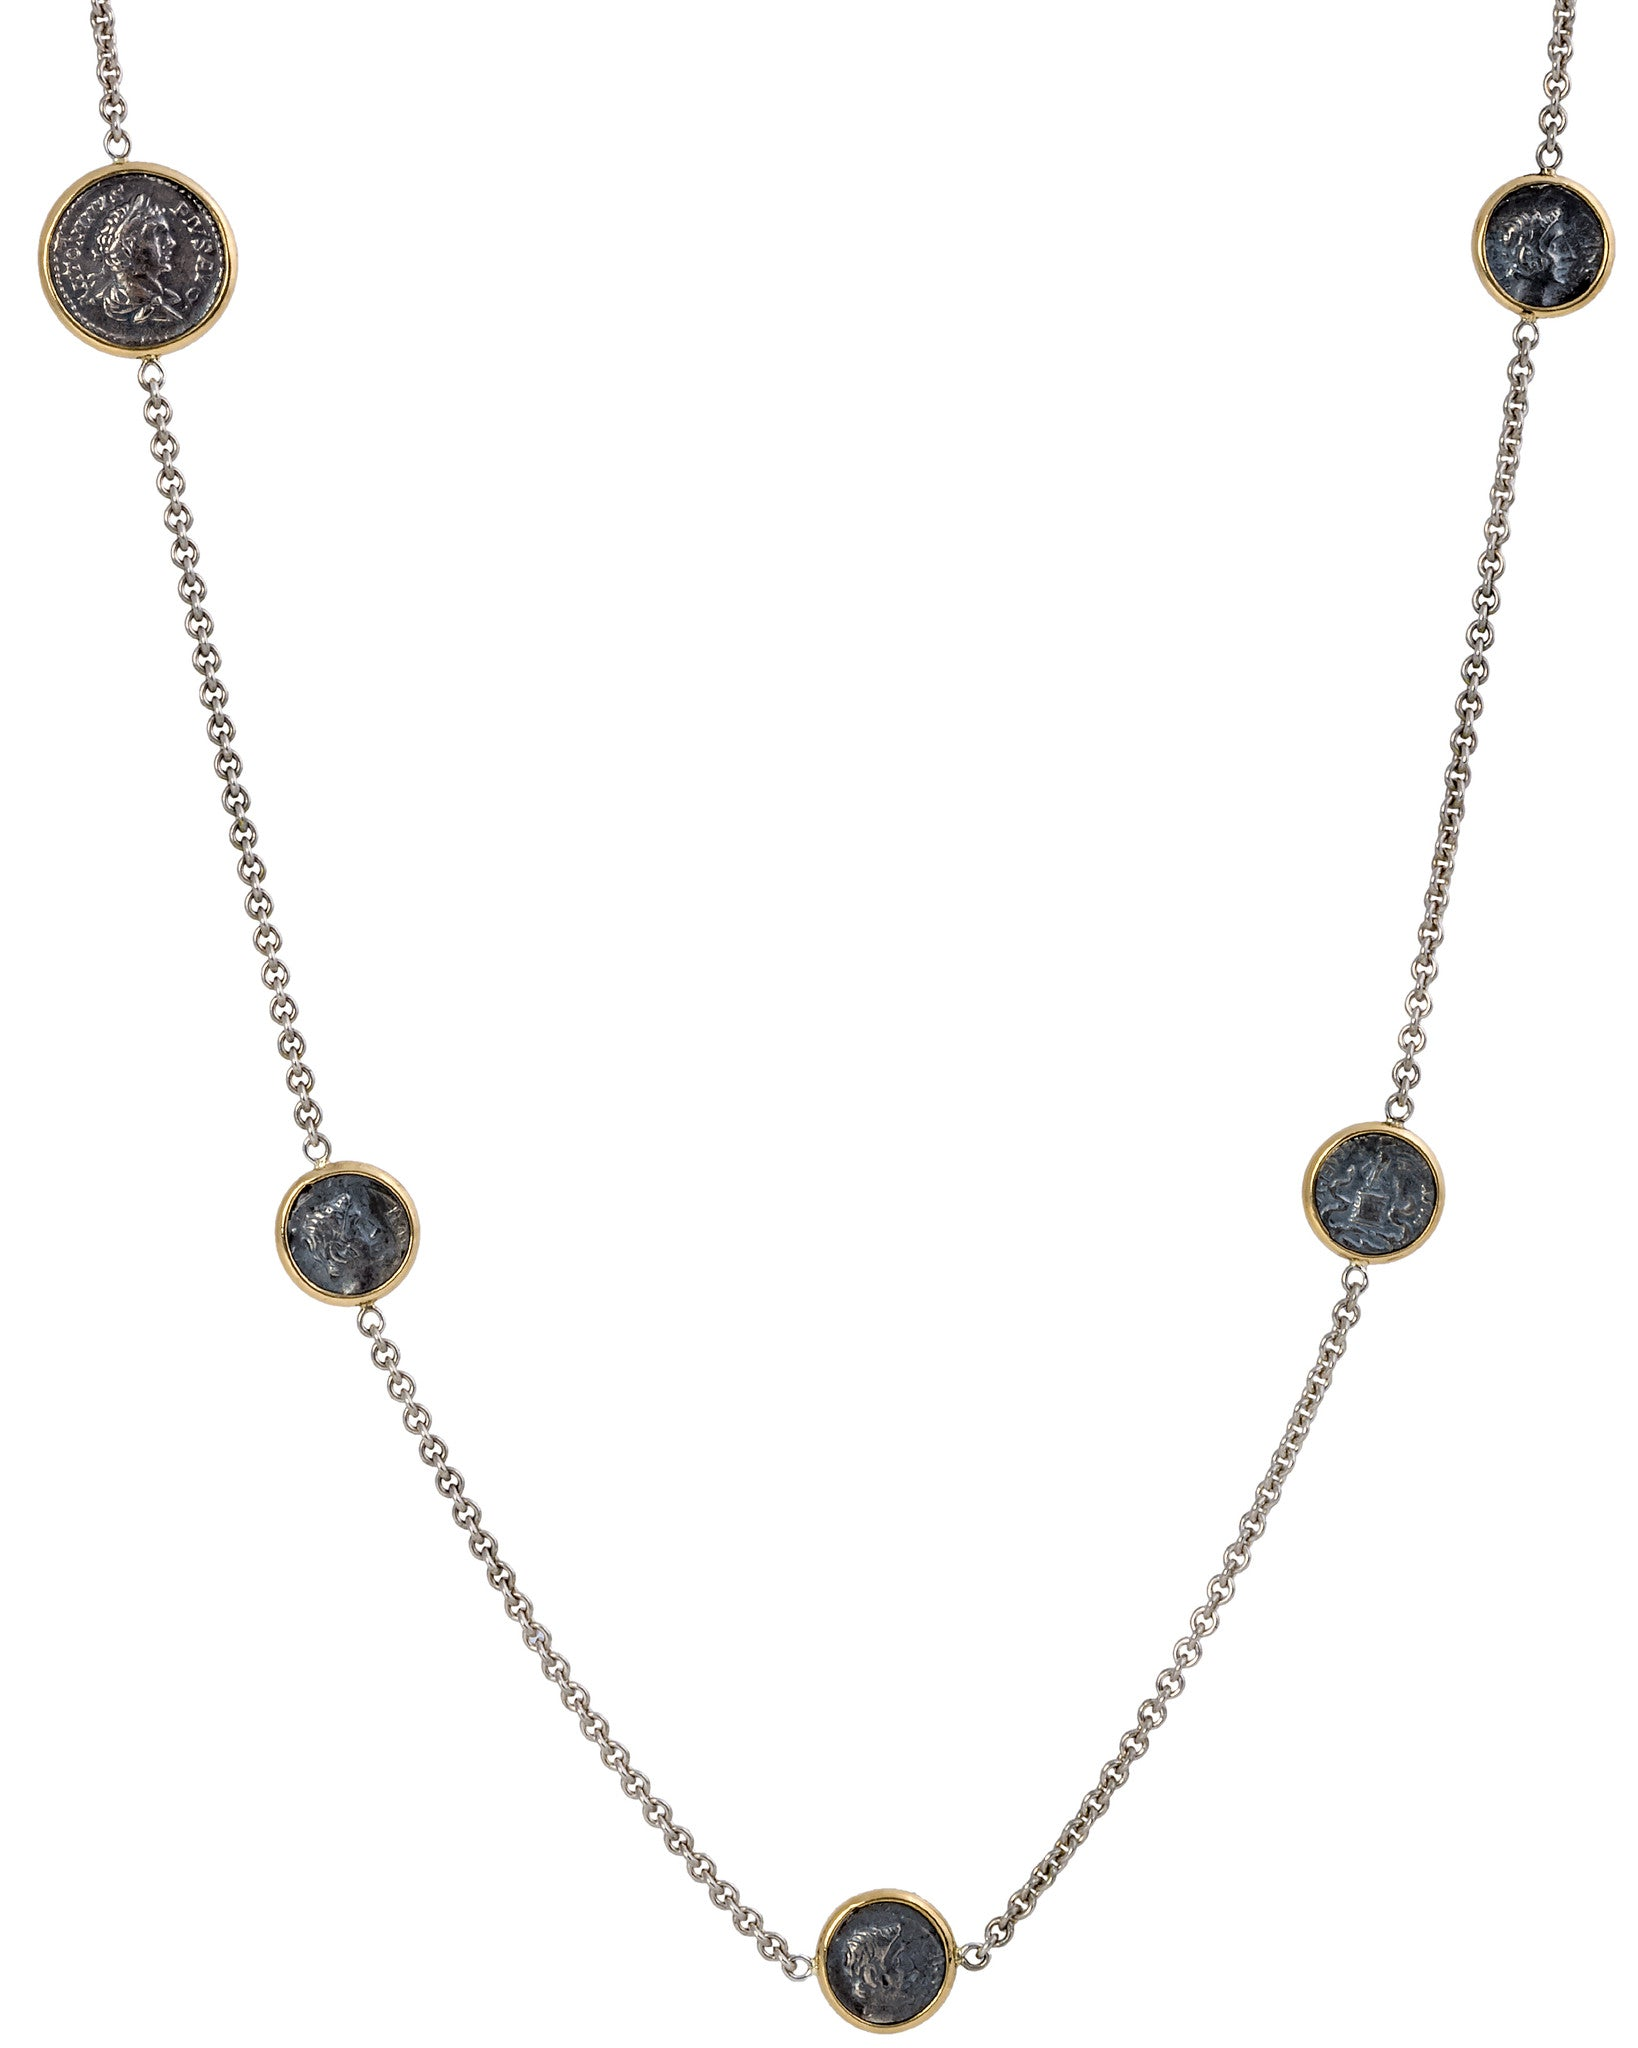 Appia 18K Yellow Gold and Sterling Silver Chain w/ 8 Antique Ottaviano Coins and 1 Antique Pius Coin - Chain Length: 36 in